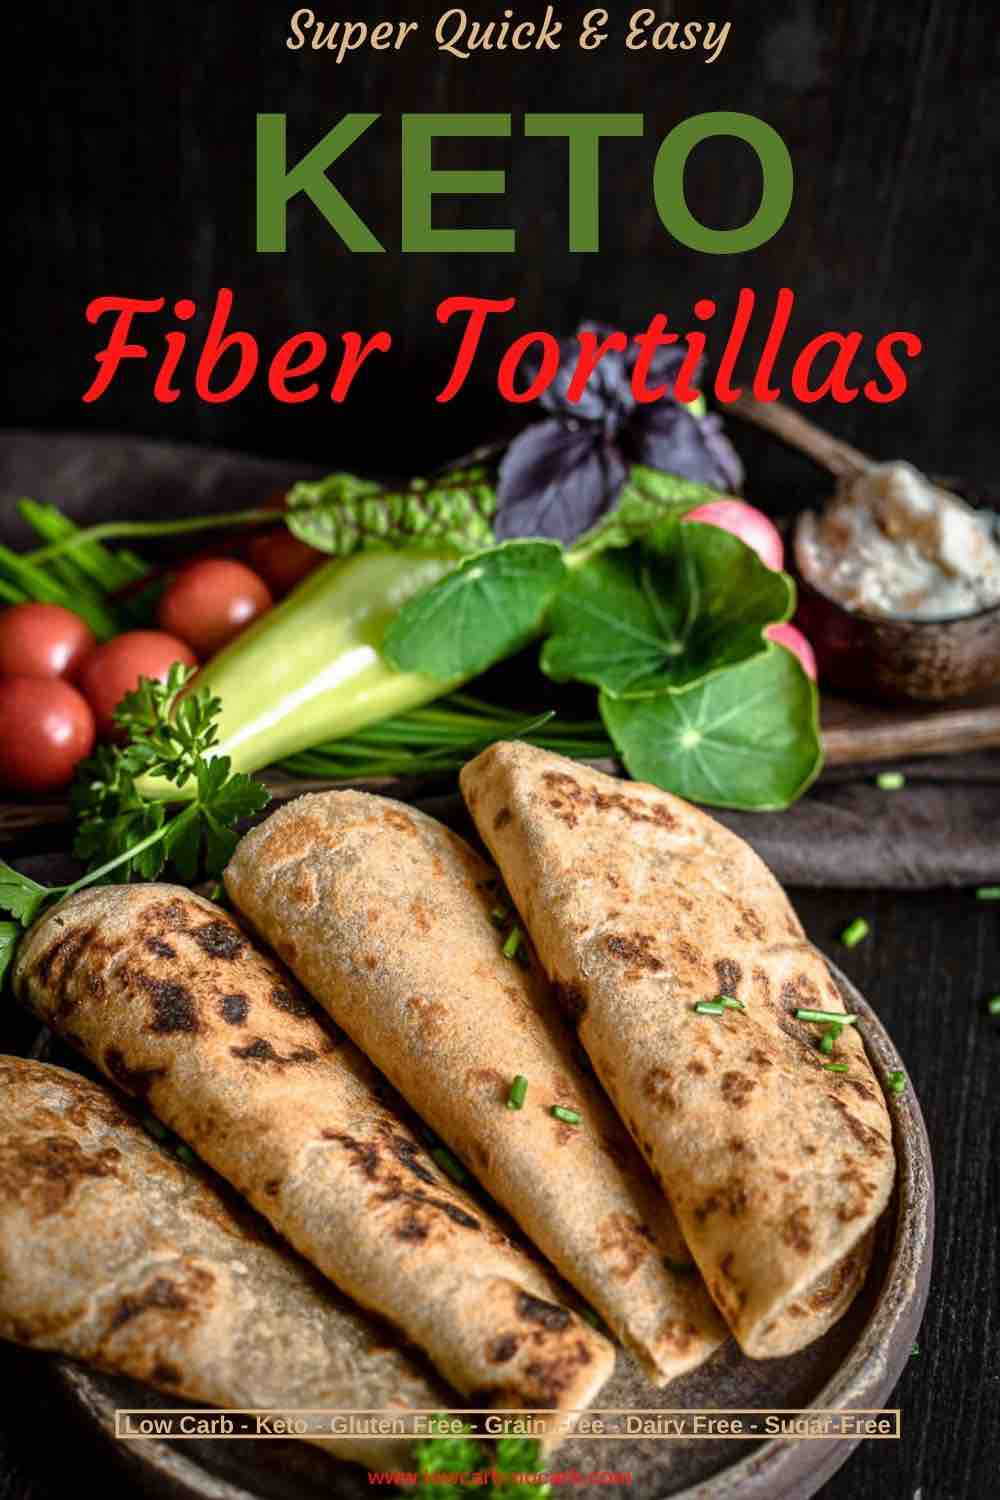 Rustic looking Tortilla filled with Fiber